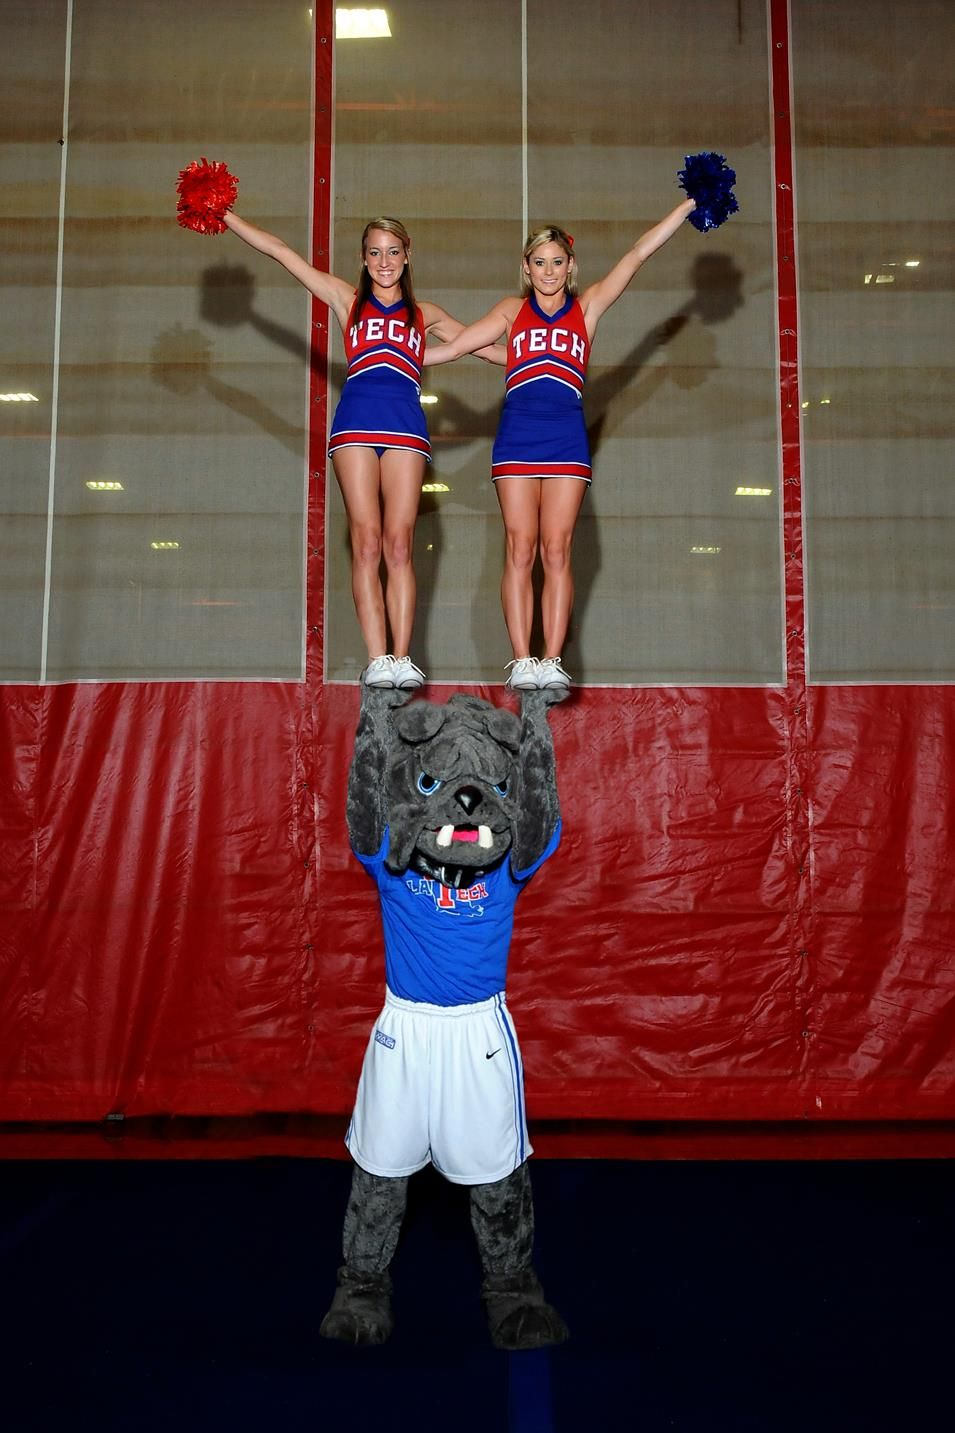 Champ represents the Bulldogs at LA Tech Louisiana tech